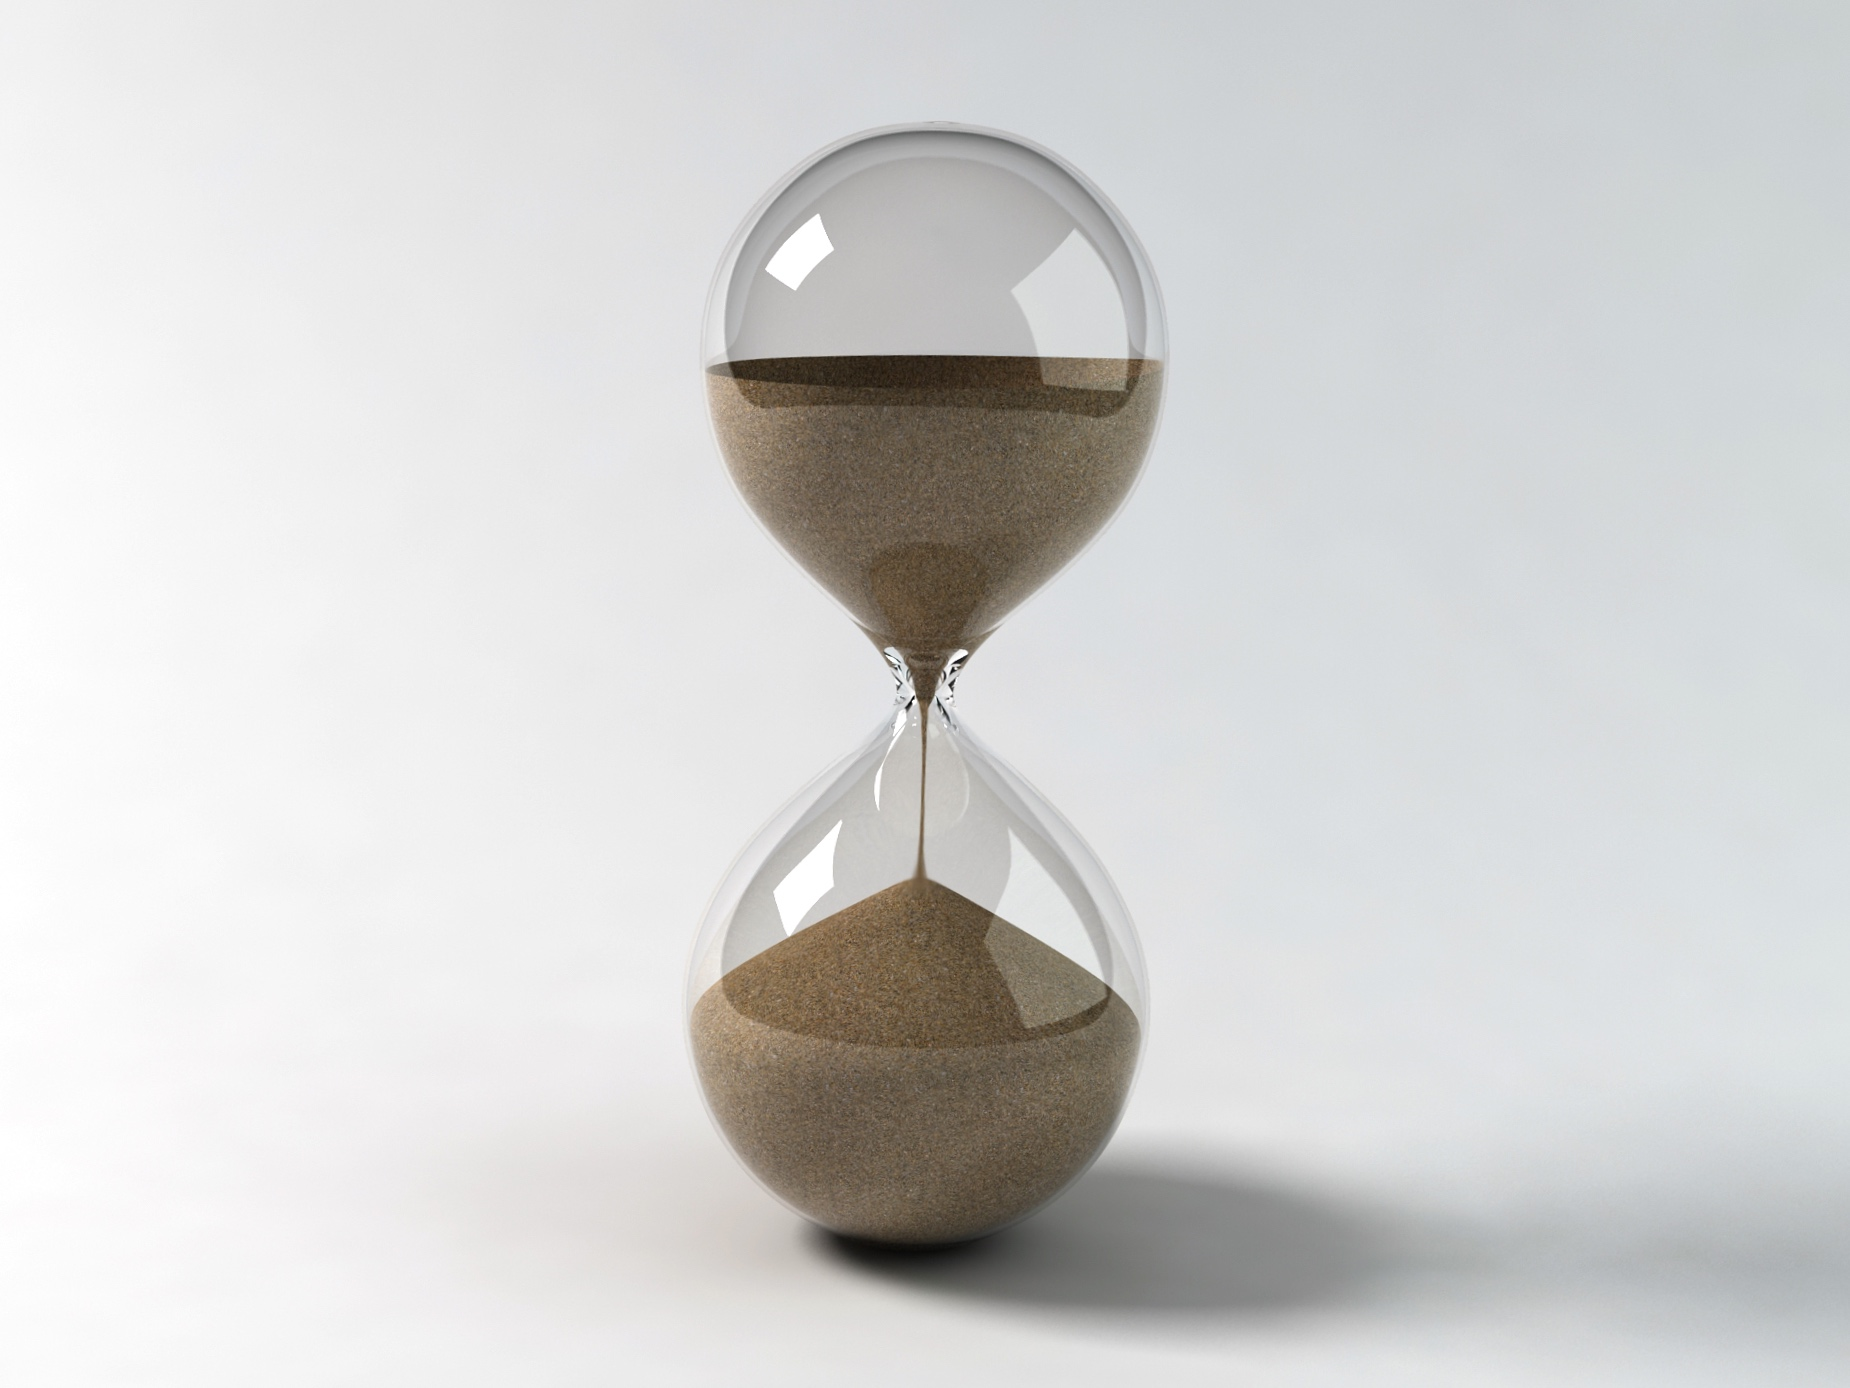 Stock photography, Hour glass concept by Julieta Aranda